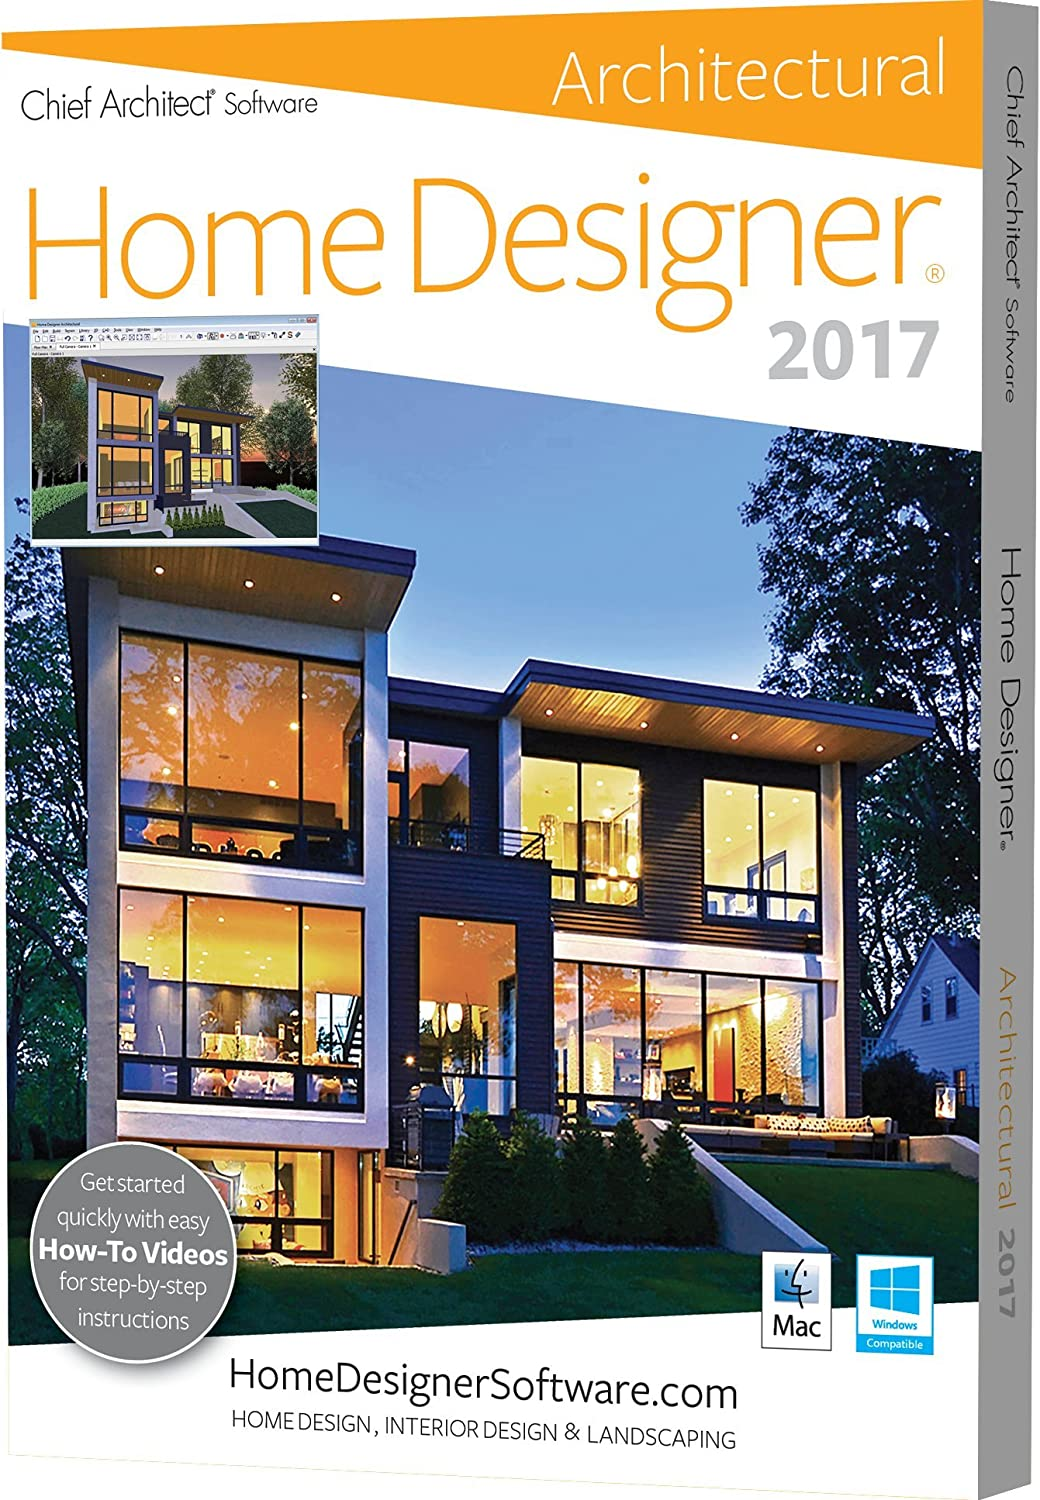 Amazoncom Chief Architect Home Designer Architectural 2017 Software